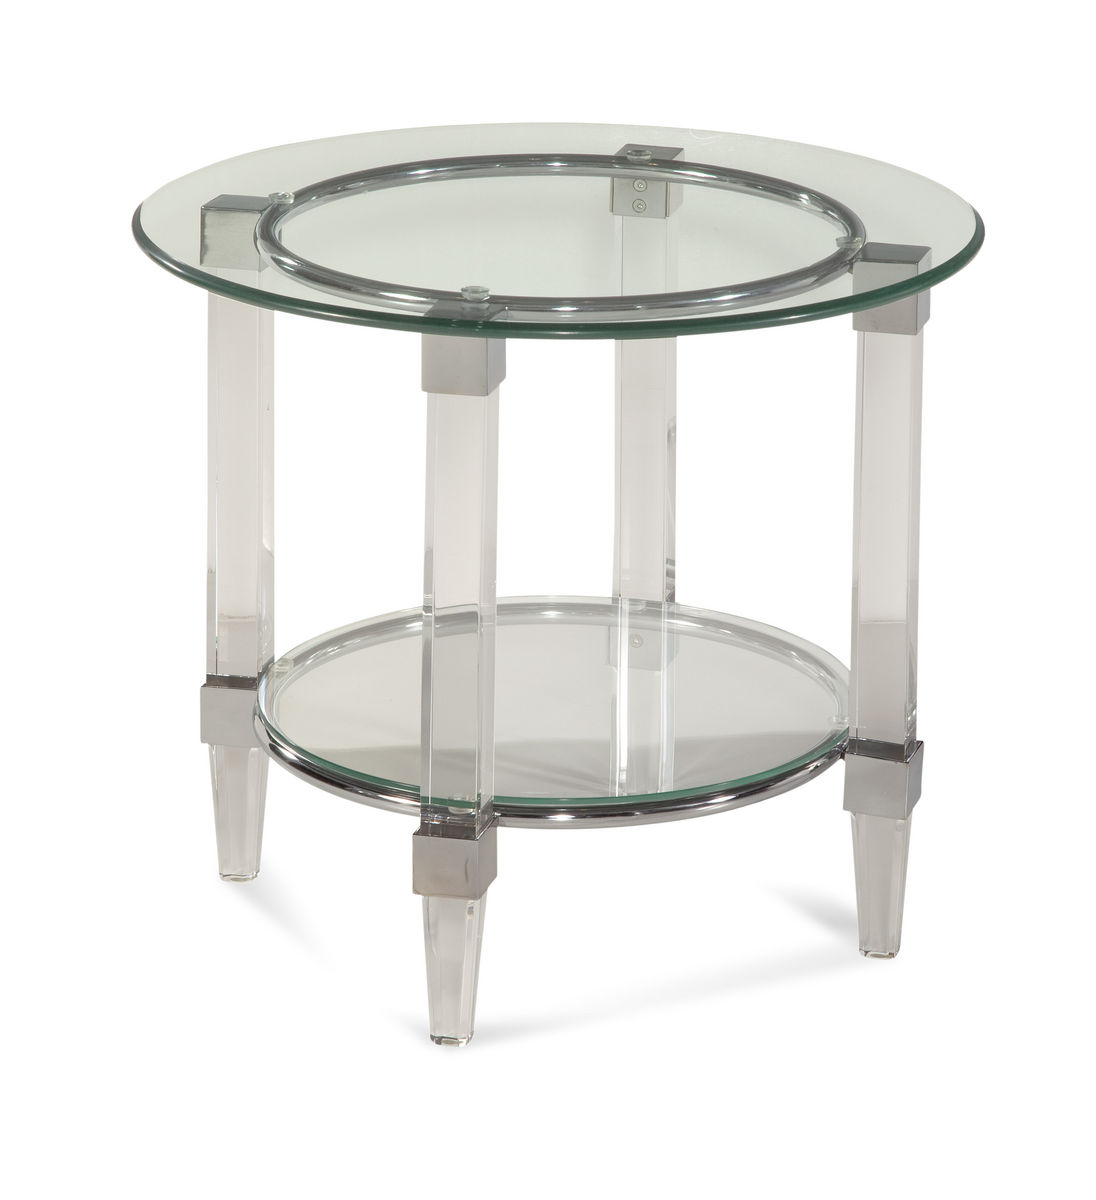 cristal round end table acrylic chrome unfinished accent black shape west elm coffee desk bathroom fittings covers bar height set home wall decor metal pedestal base pottery barn